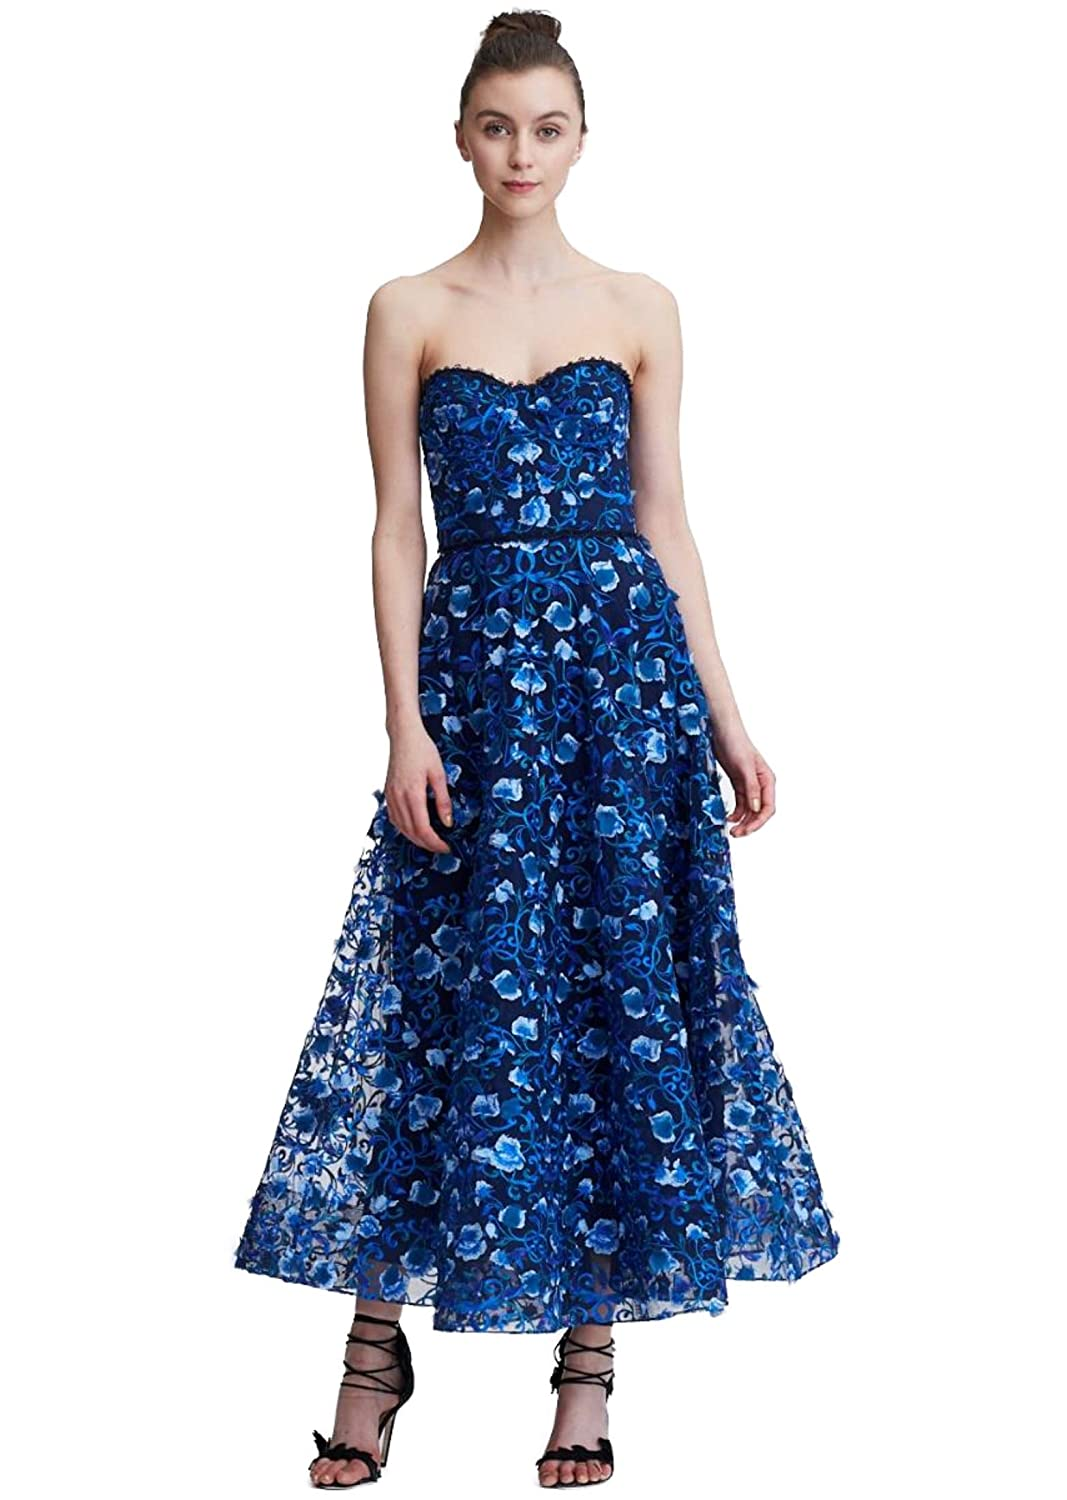 aa718c85f2b30 Marchesa Notte Women s Strapless Floral Embroidered Midi Dress 6 Navy at  Amazon Women s Clothing store